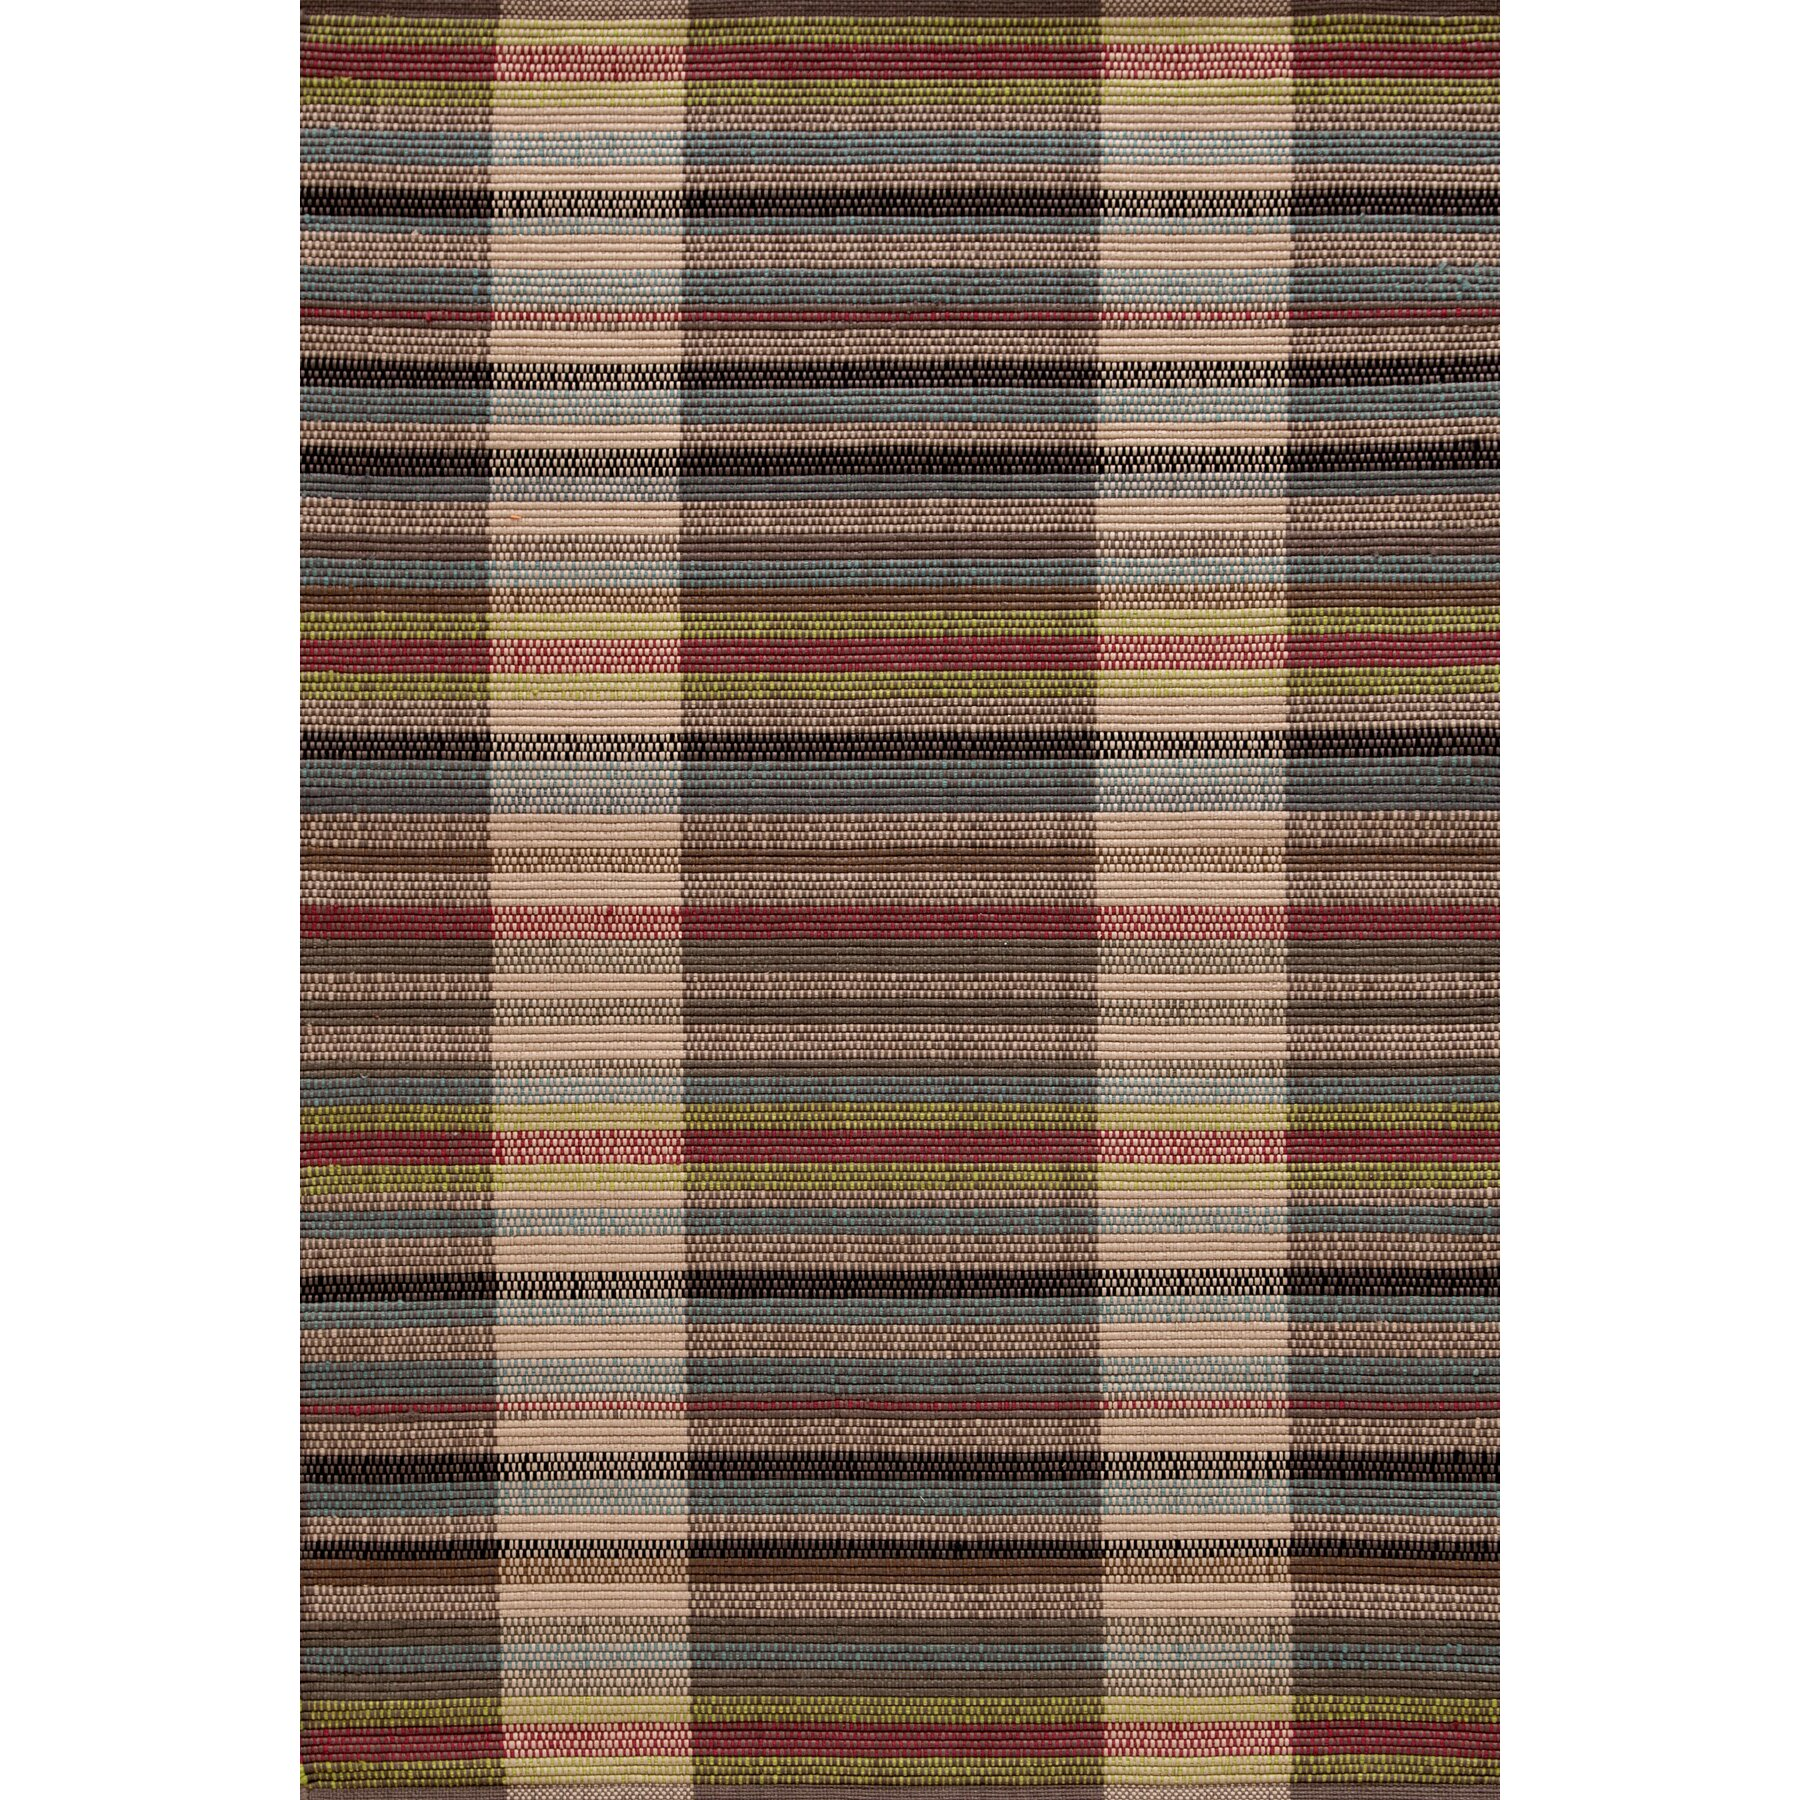 Swedish rag hand woven indoor outdoor area rug wayfair for Woven vinyl outdoor rugs